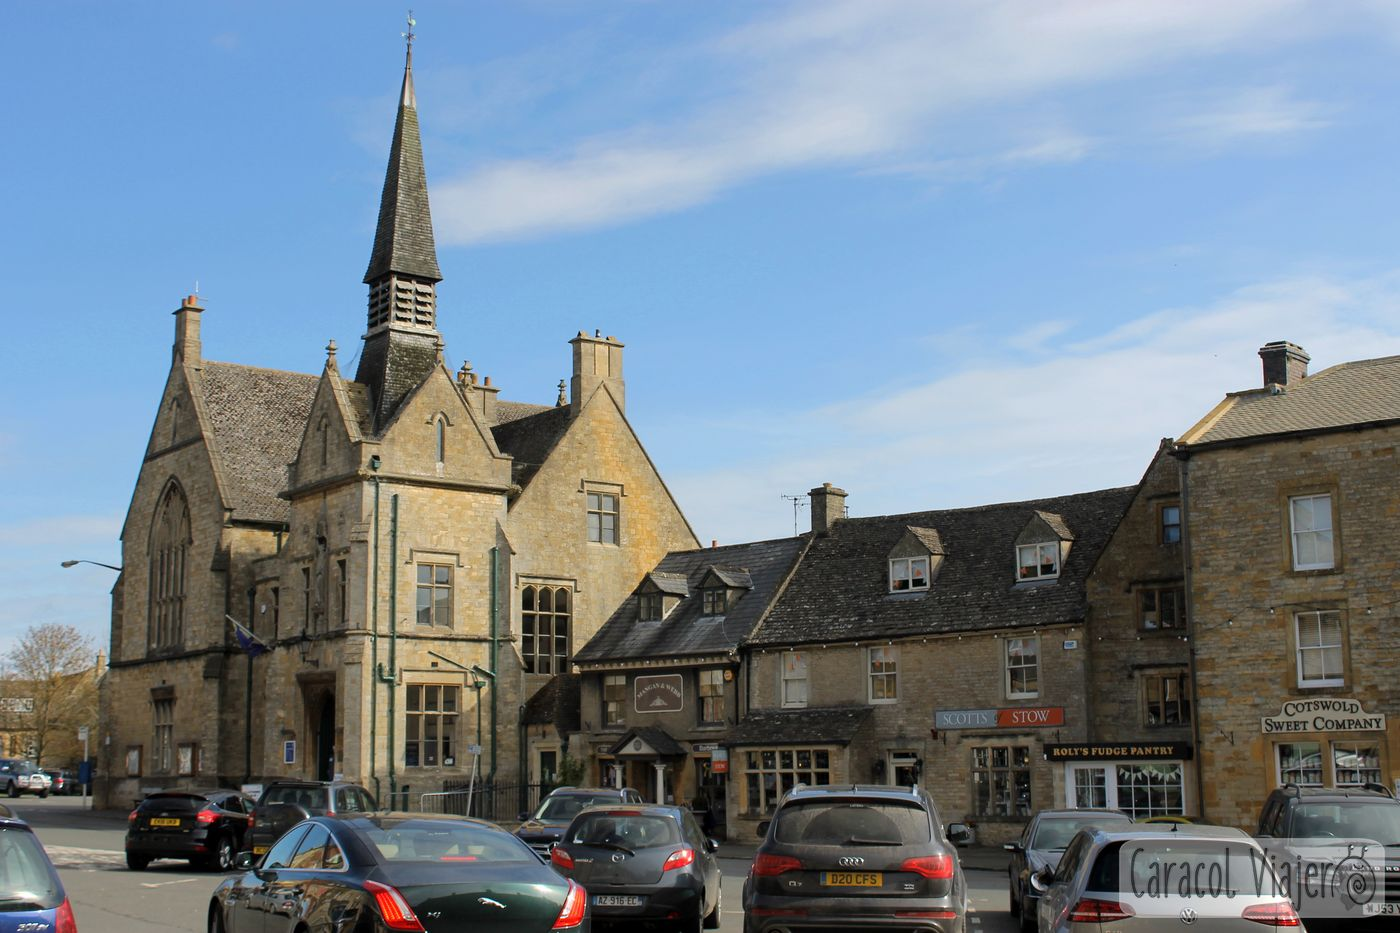 Plaza del mercado en Stow-on-the-Wold